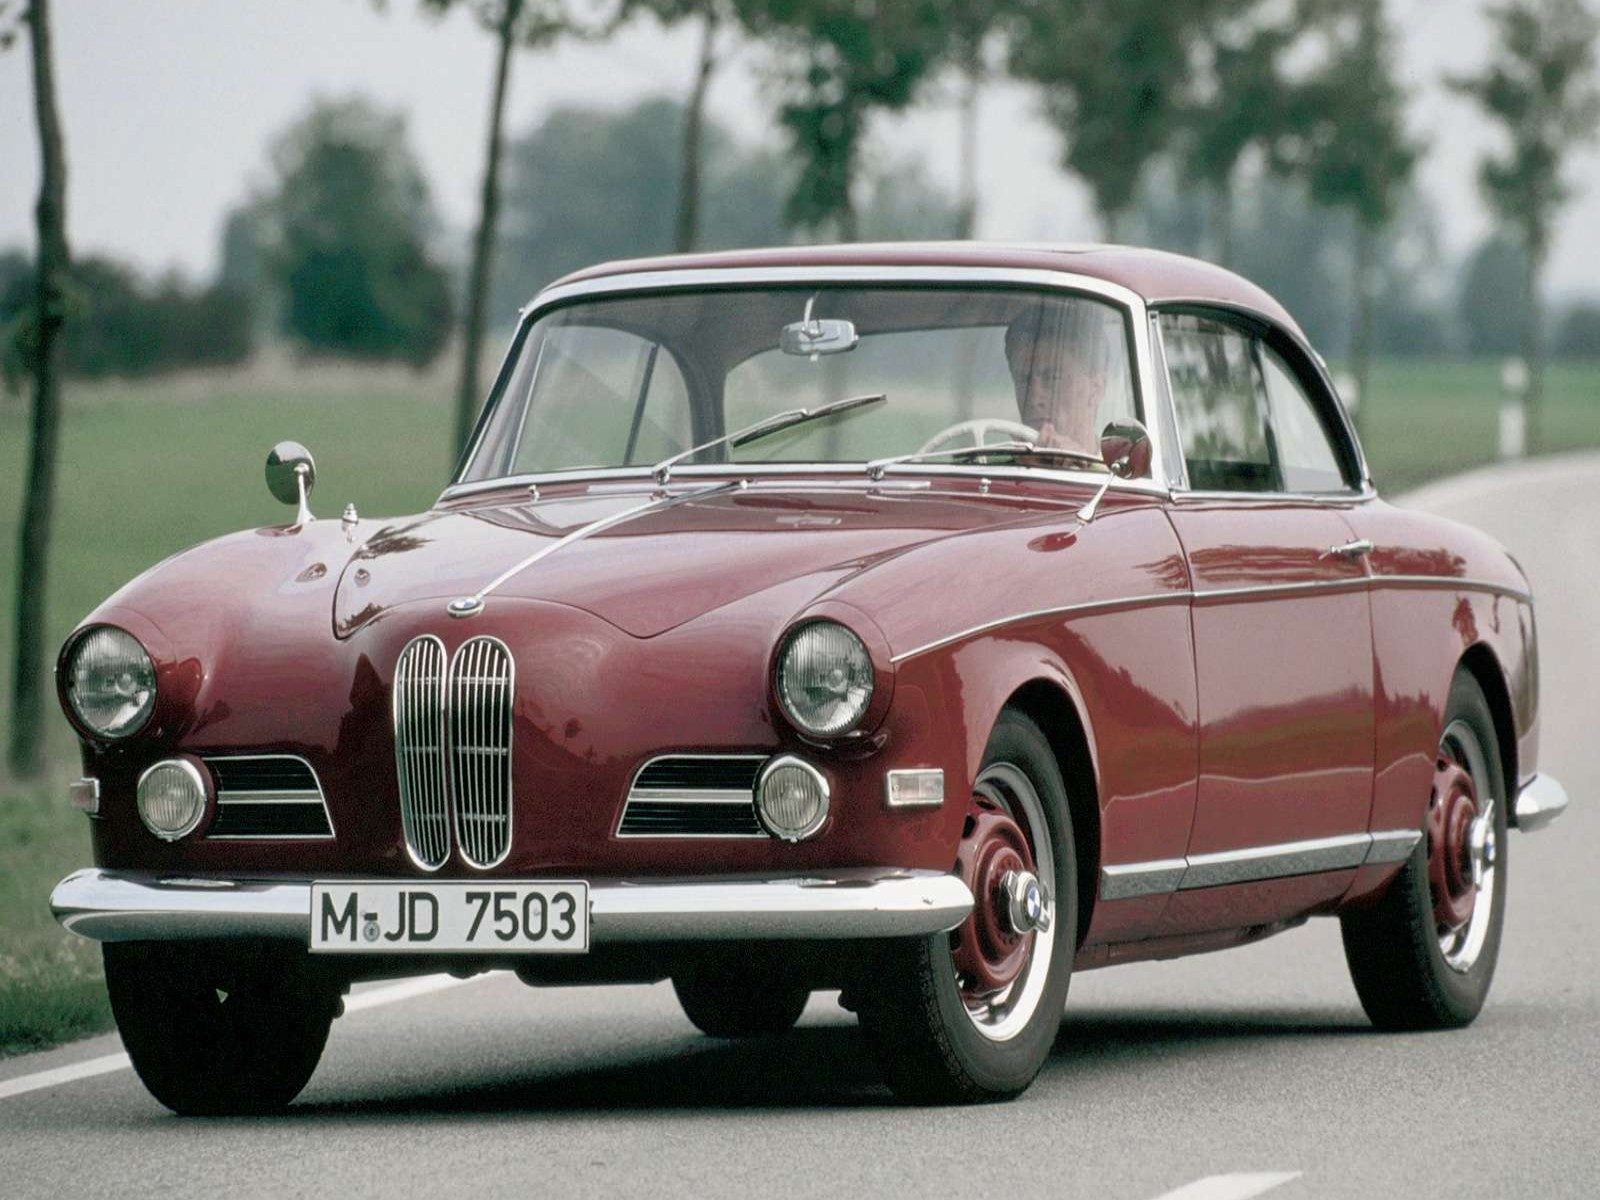 BMW 503 Coupe model 1956